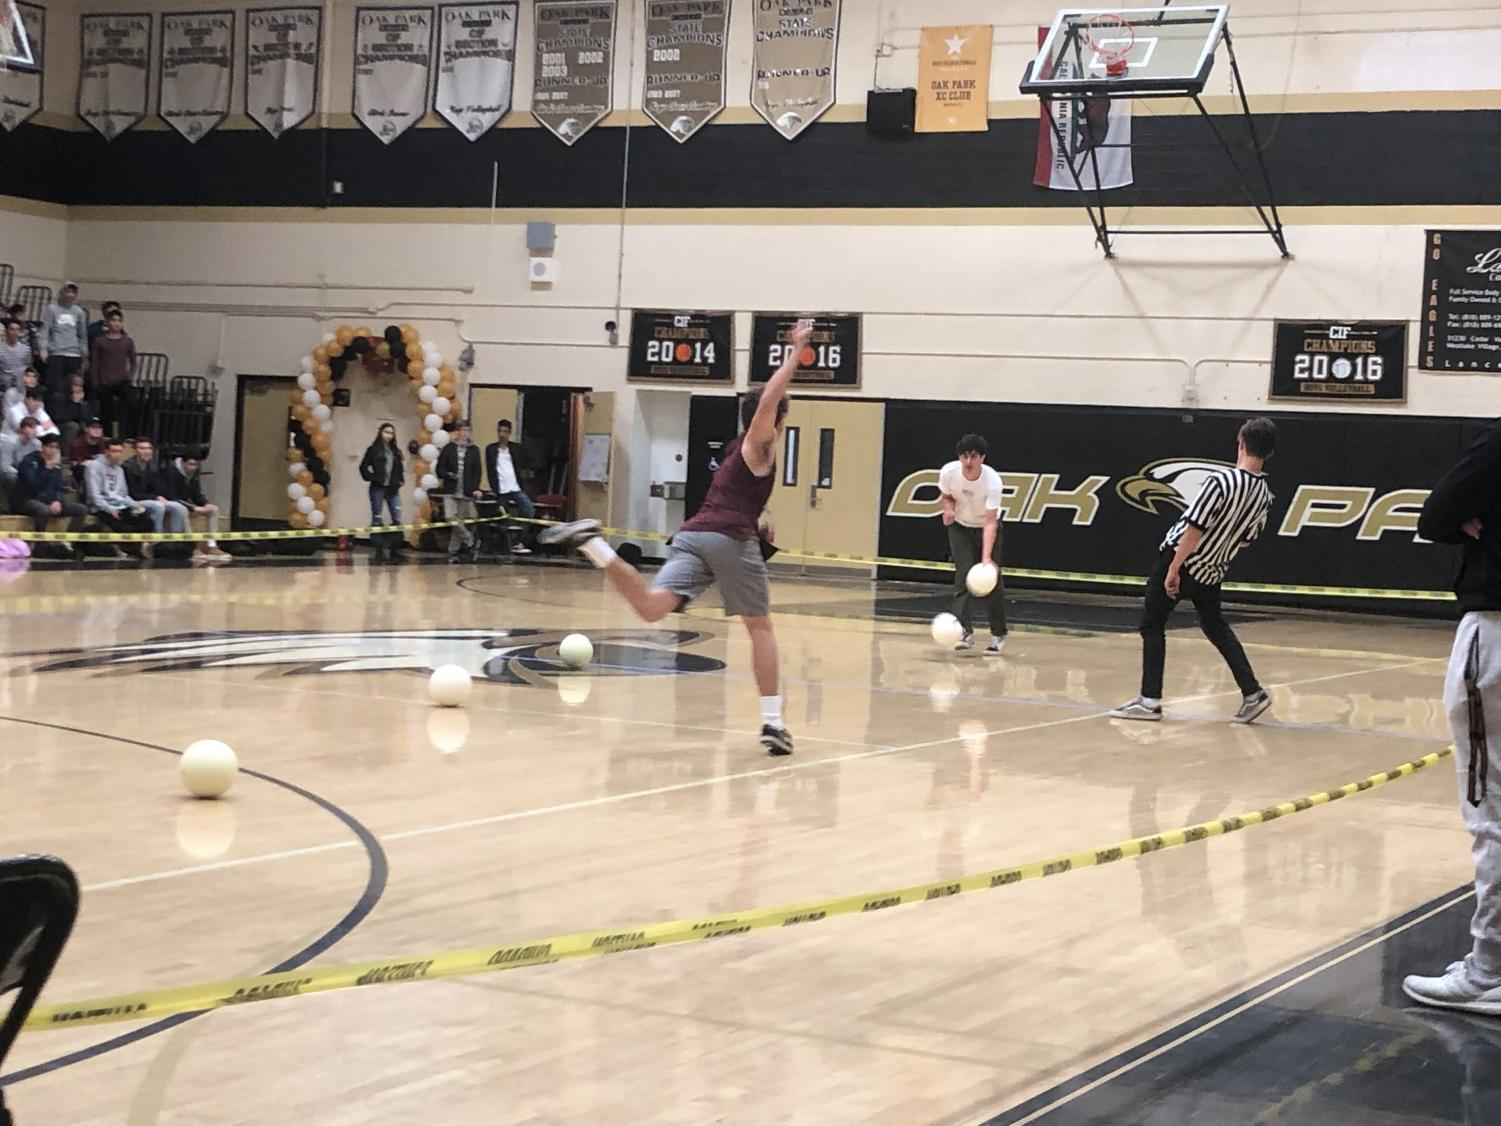 Team Jake Sease, the winners of the Oak Park High School dodgeball tournament, compete in the finals of the tournament. The dodgeball tournament was held by ASB as part of rally week.